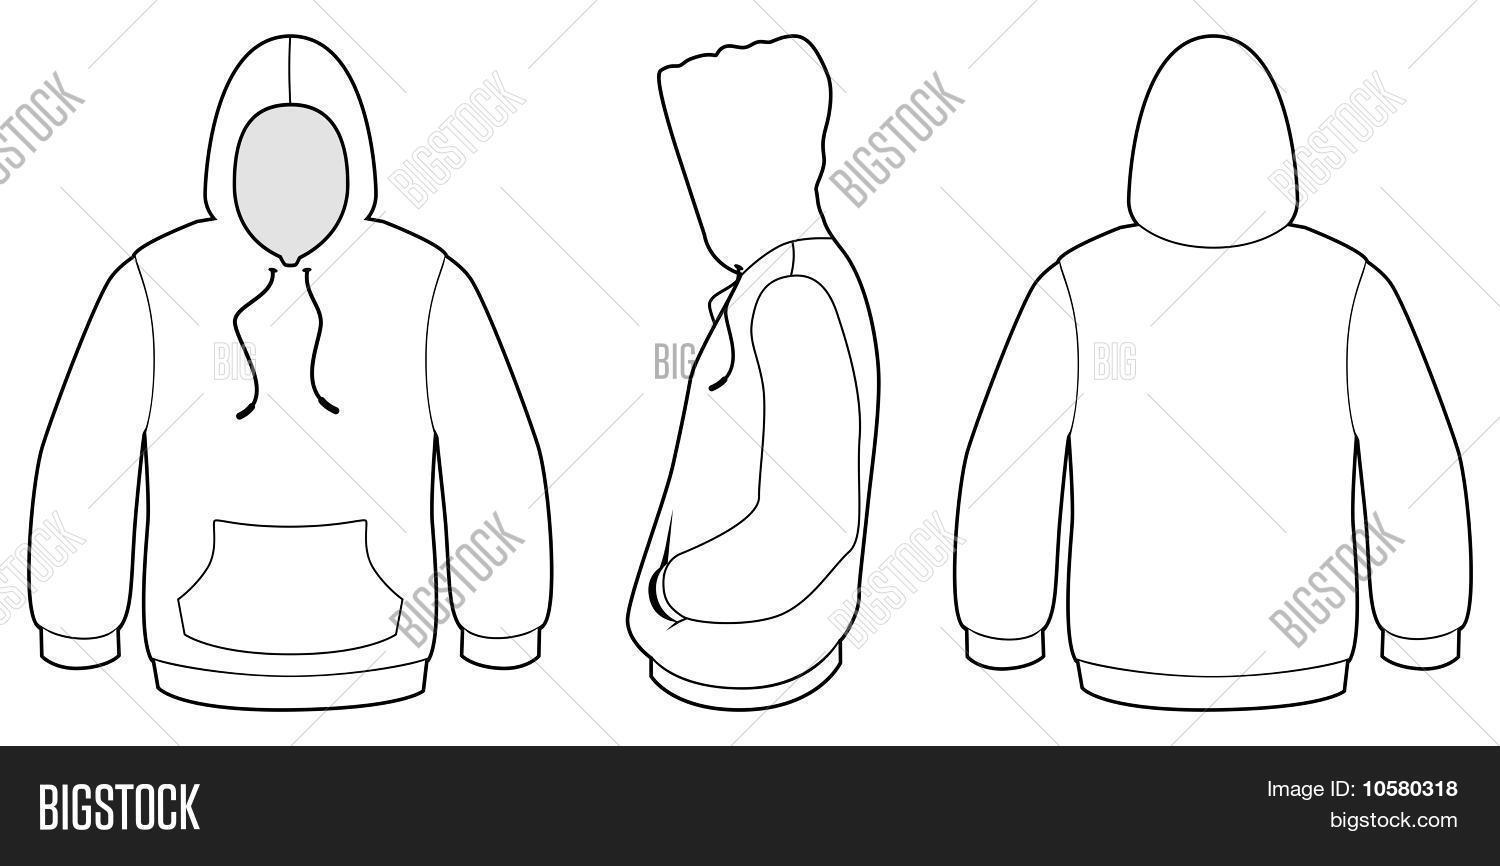 Hooded Sweater Vector & Photo (Free Trial) | Bigstock